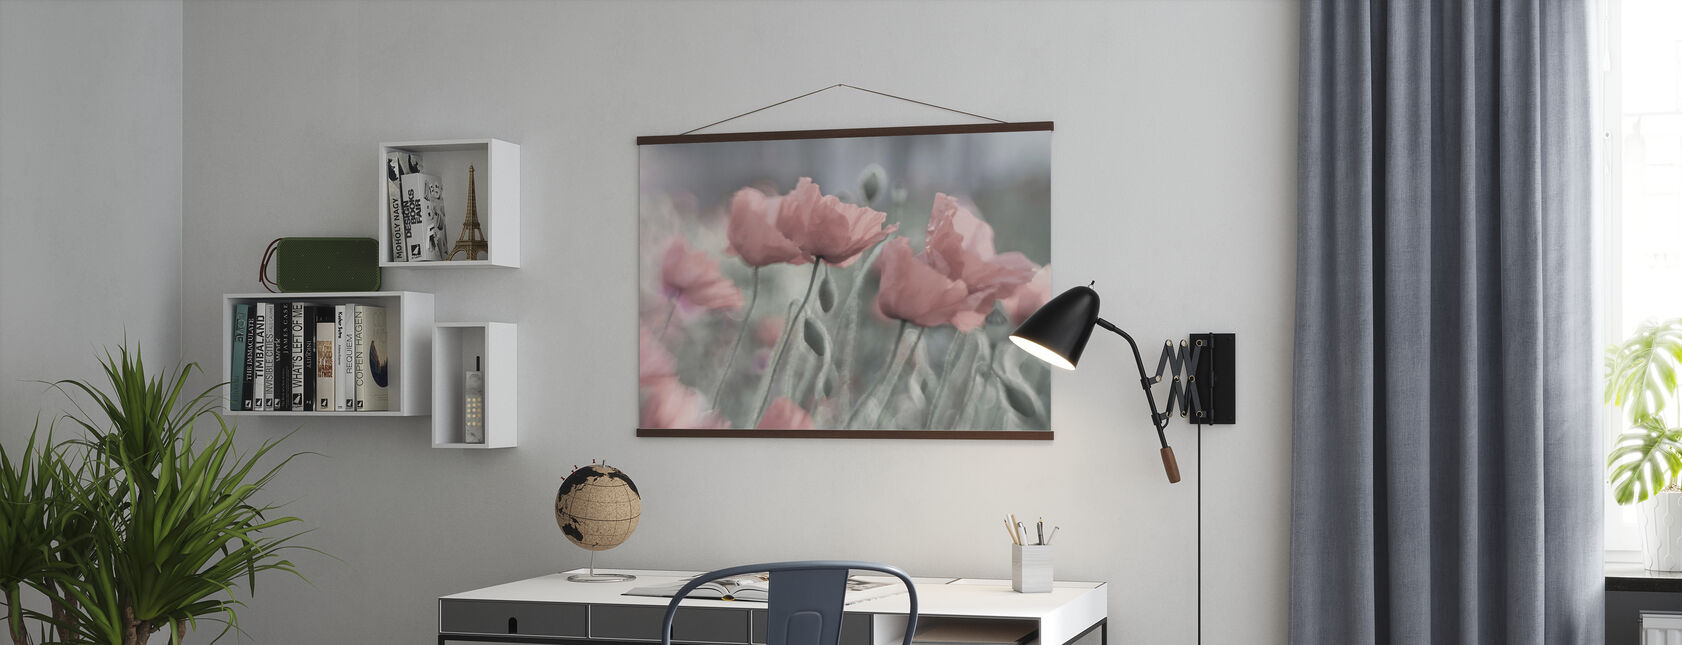 Softly - Poster - Office